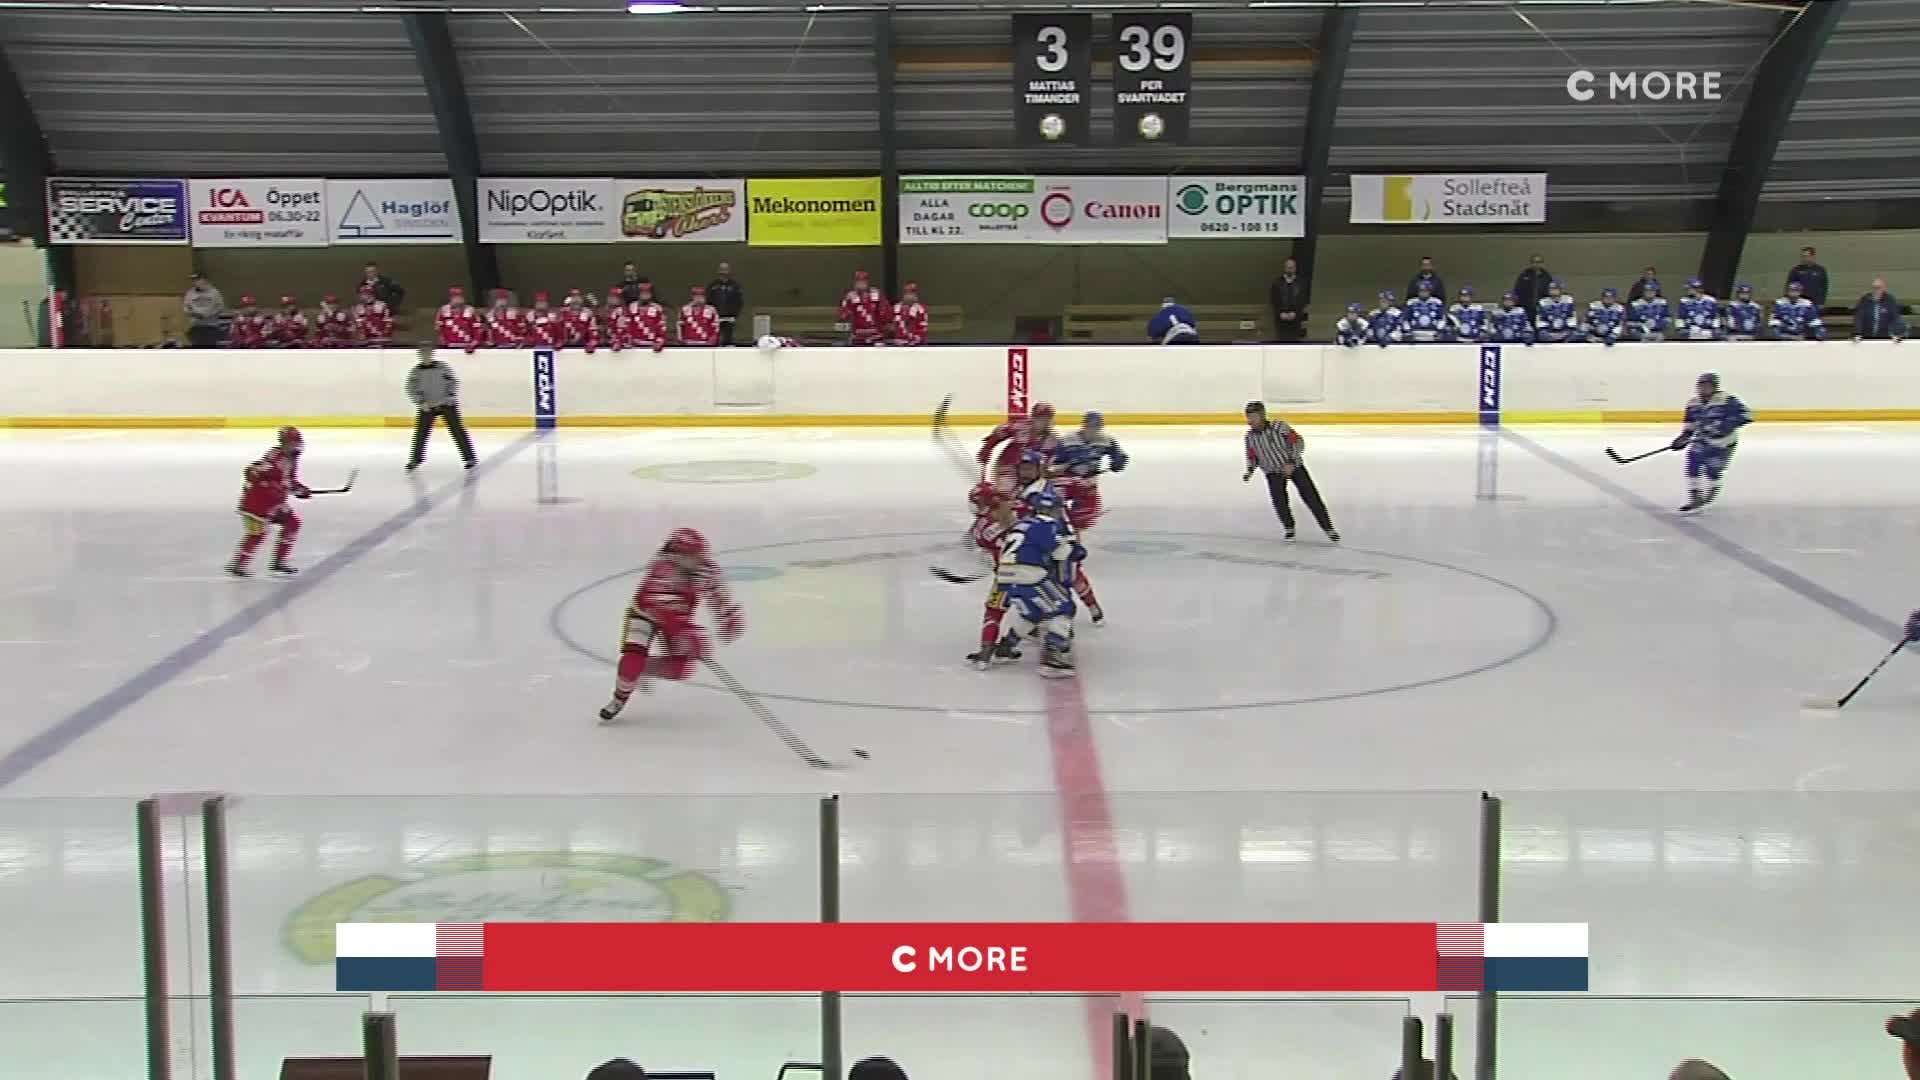 Highlights MODO-Leksand 1 februari